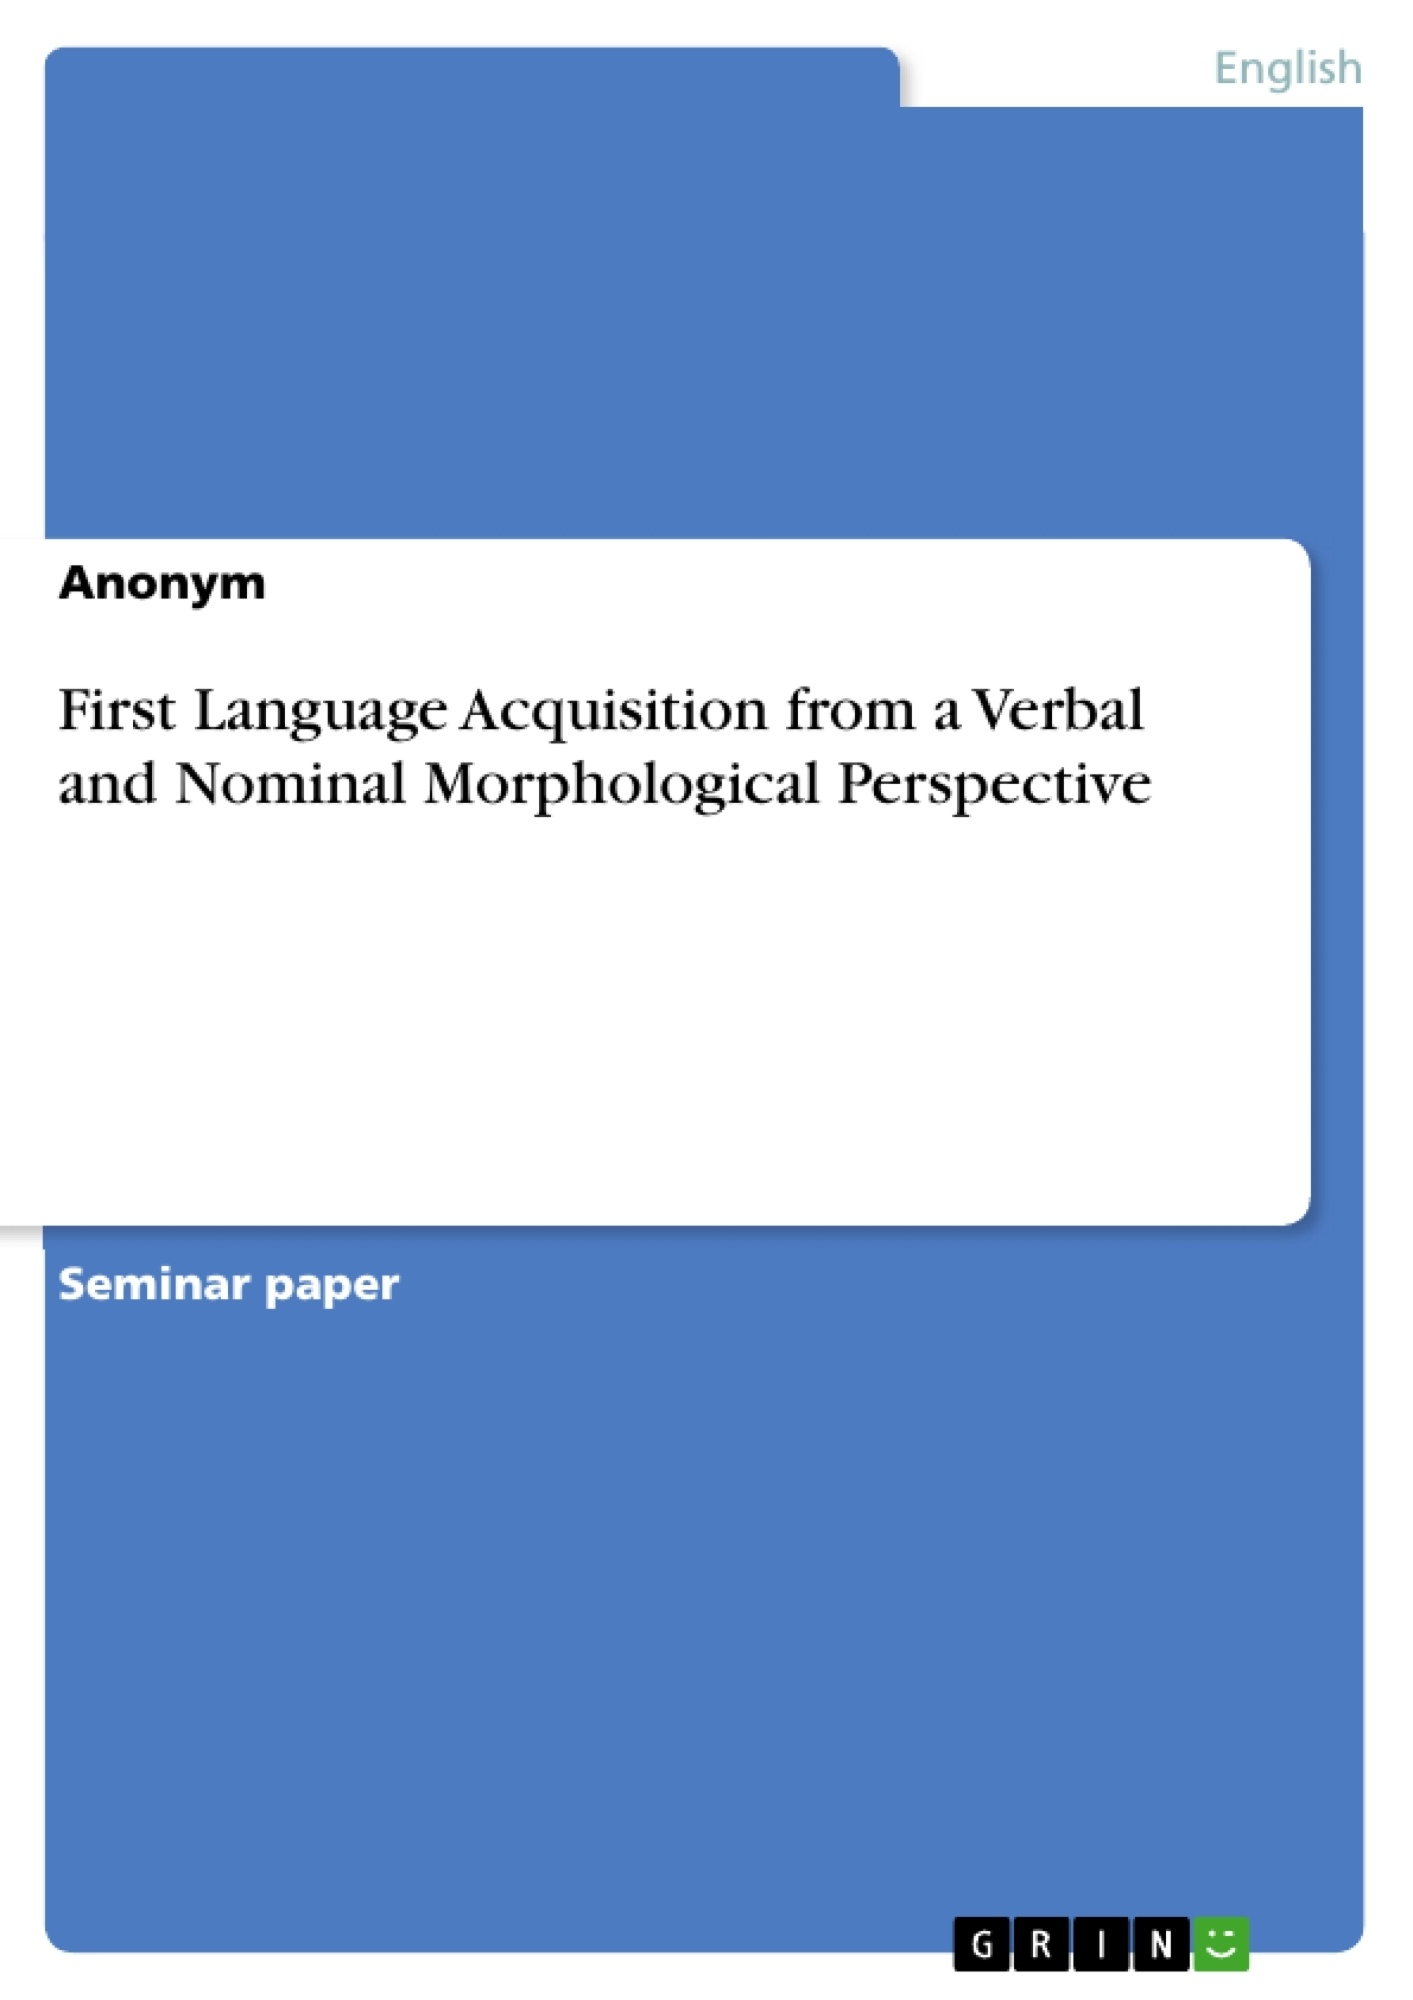 Title: First Language Acquisition from a Verbal and Nominal Morphological Perspective